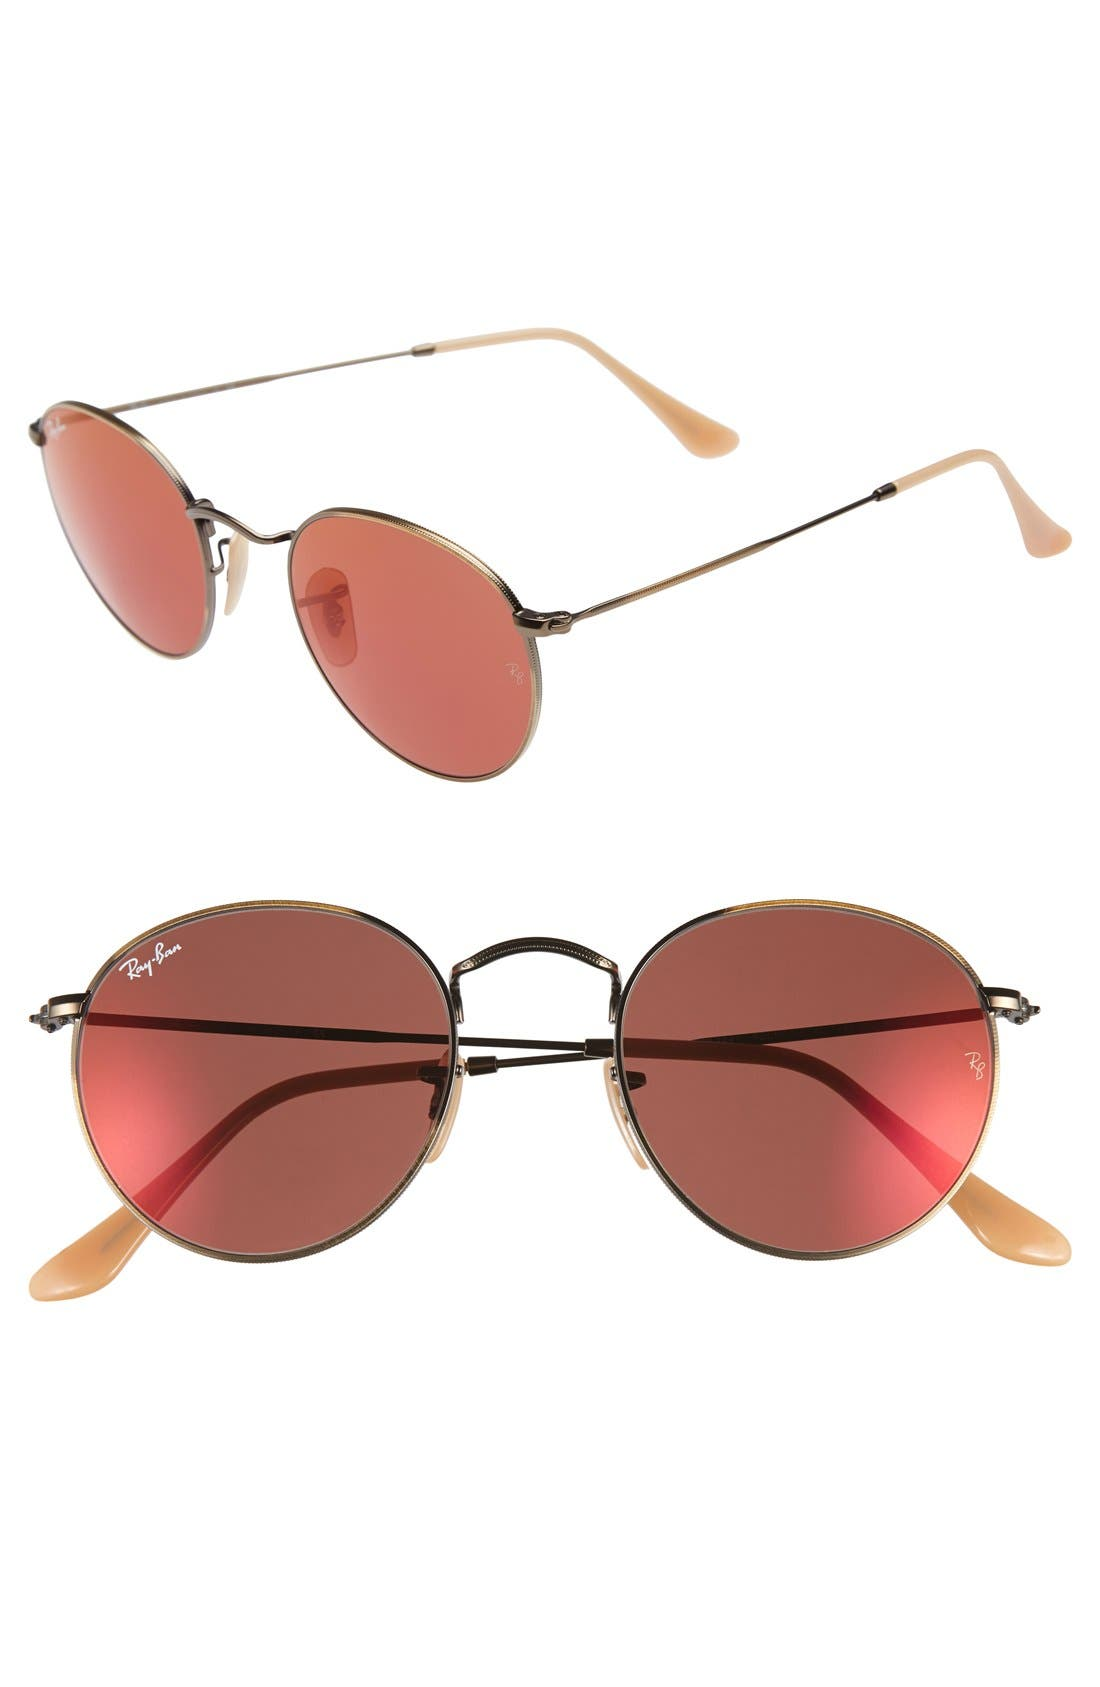 Icons 50mm Sunglasses,                         Main,                         color,